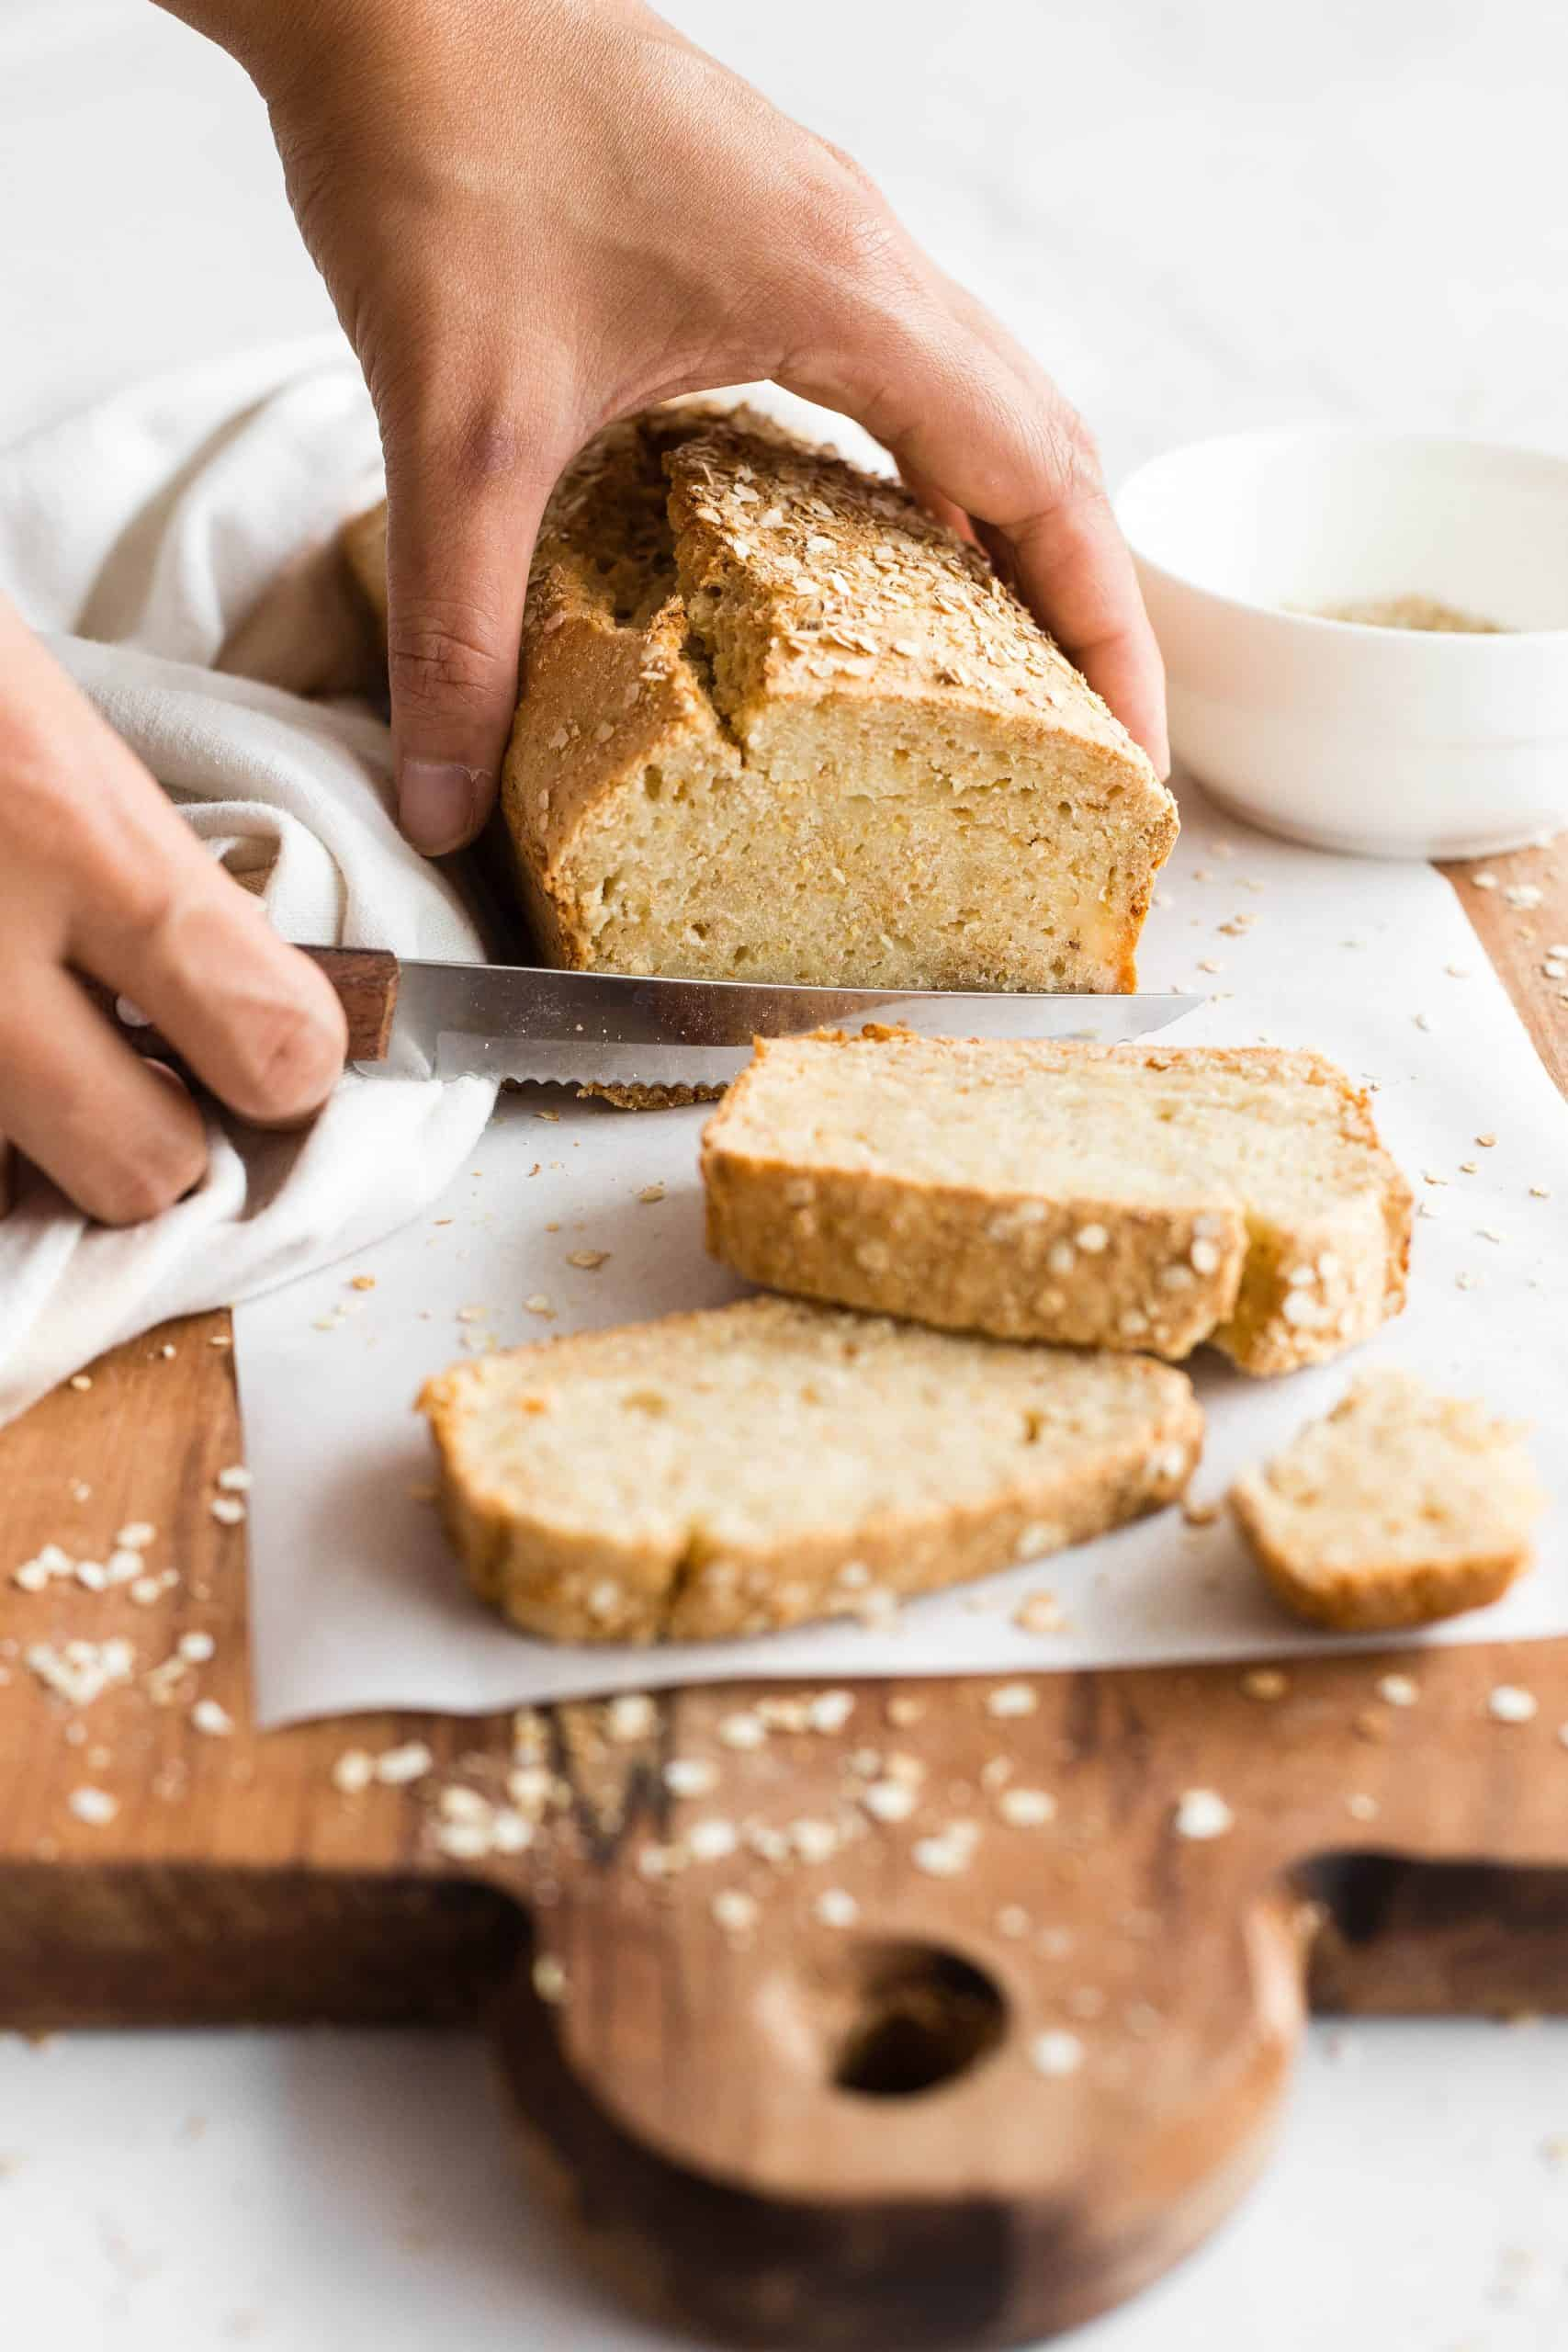 Slicing a loaf of honey quinoa bread on a parchment-lined wooden board.